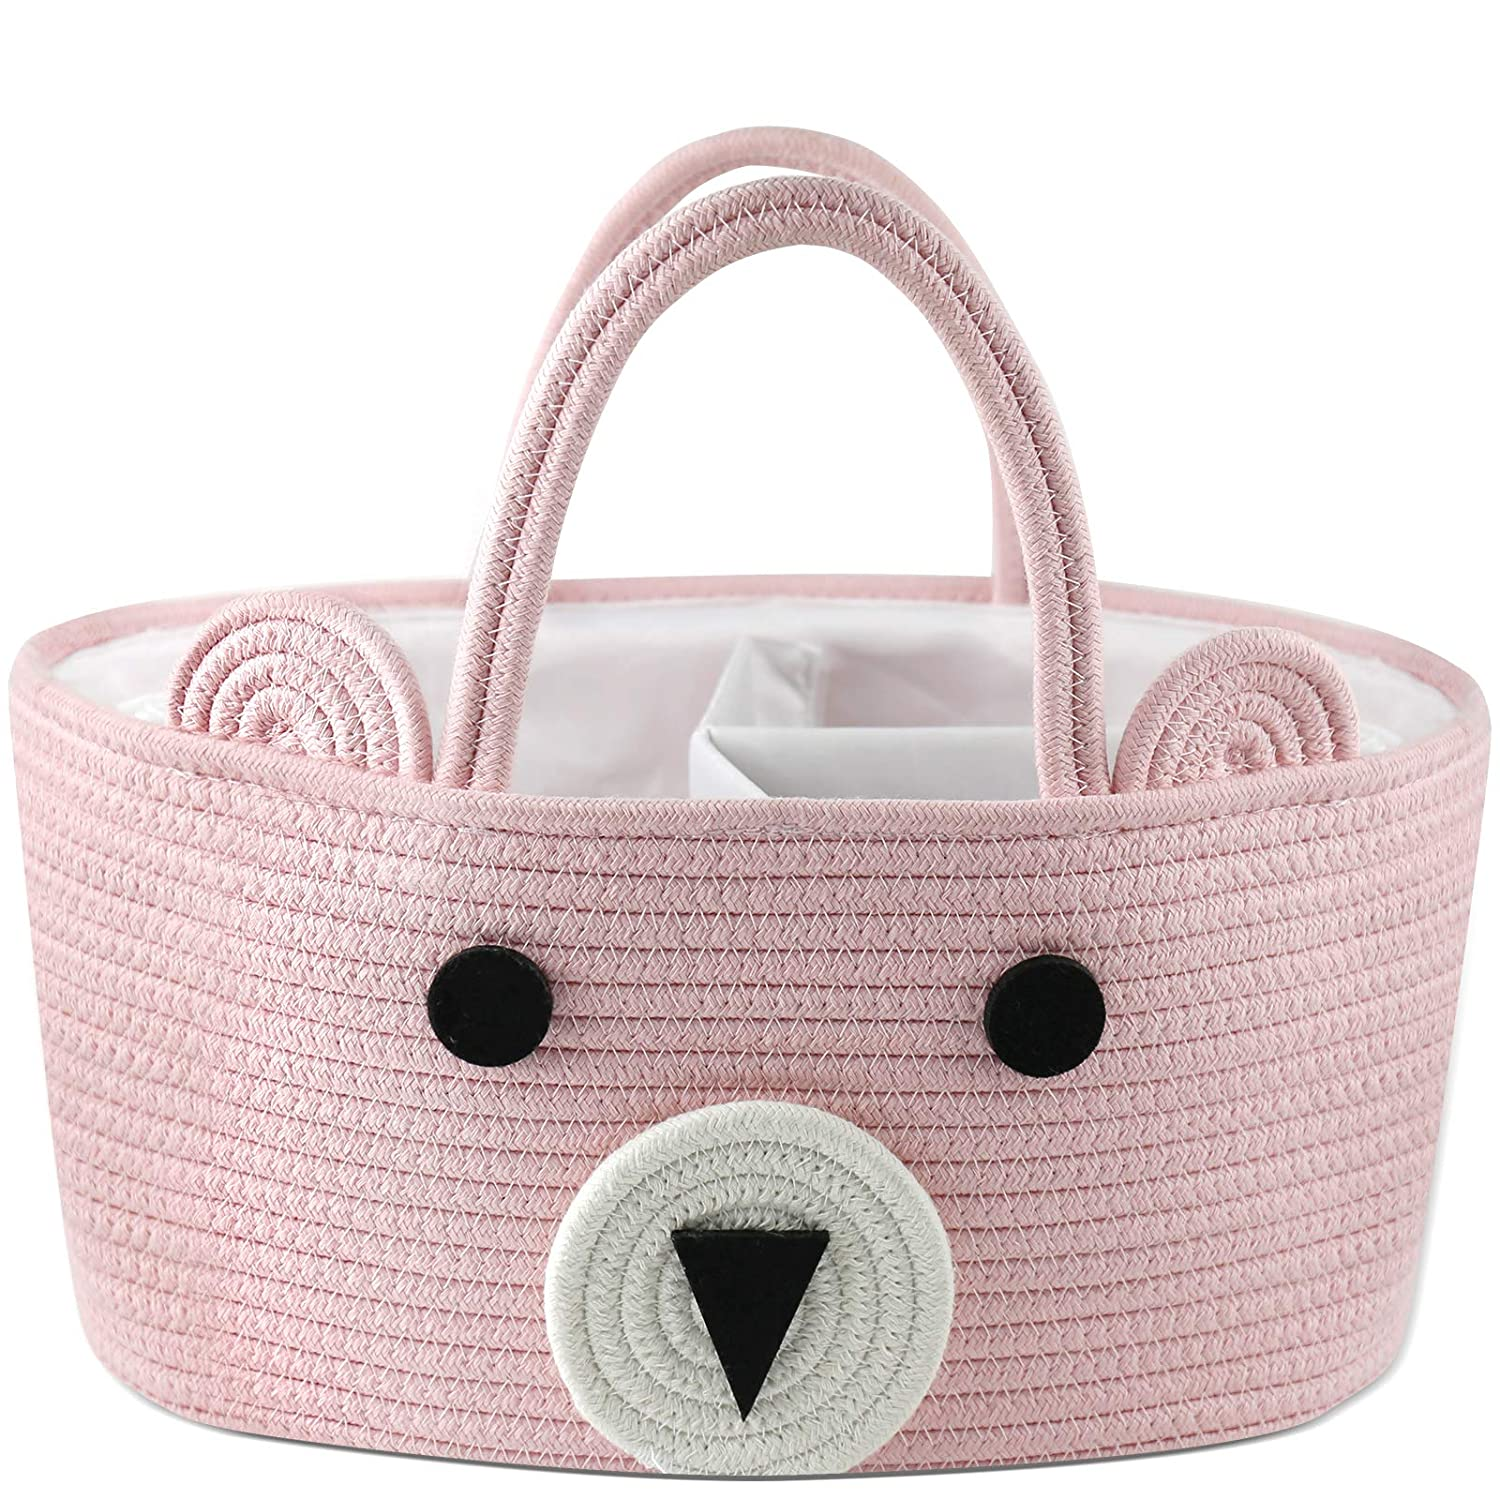 Top Baby Shower Basket Conthfut Baby Diaper Caddy Organizer 100/% Cotton Canvas Stylish Rope Nursery Storage Bin Portable Tote Bag /& Car Organizer For Changing Table